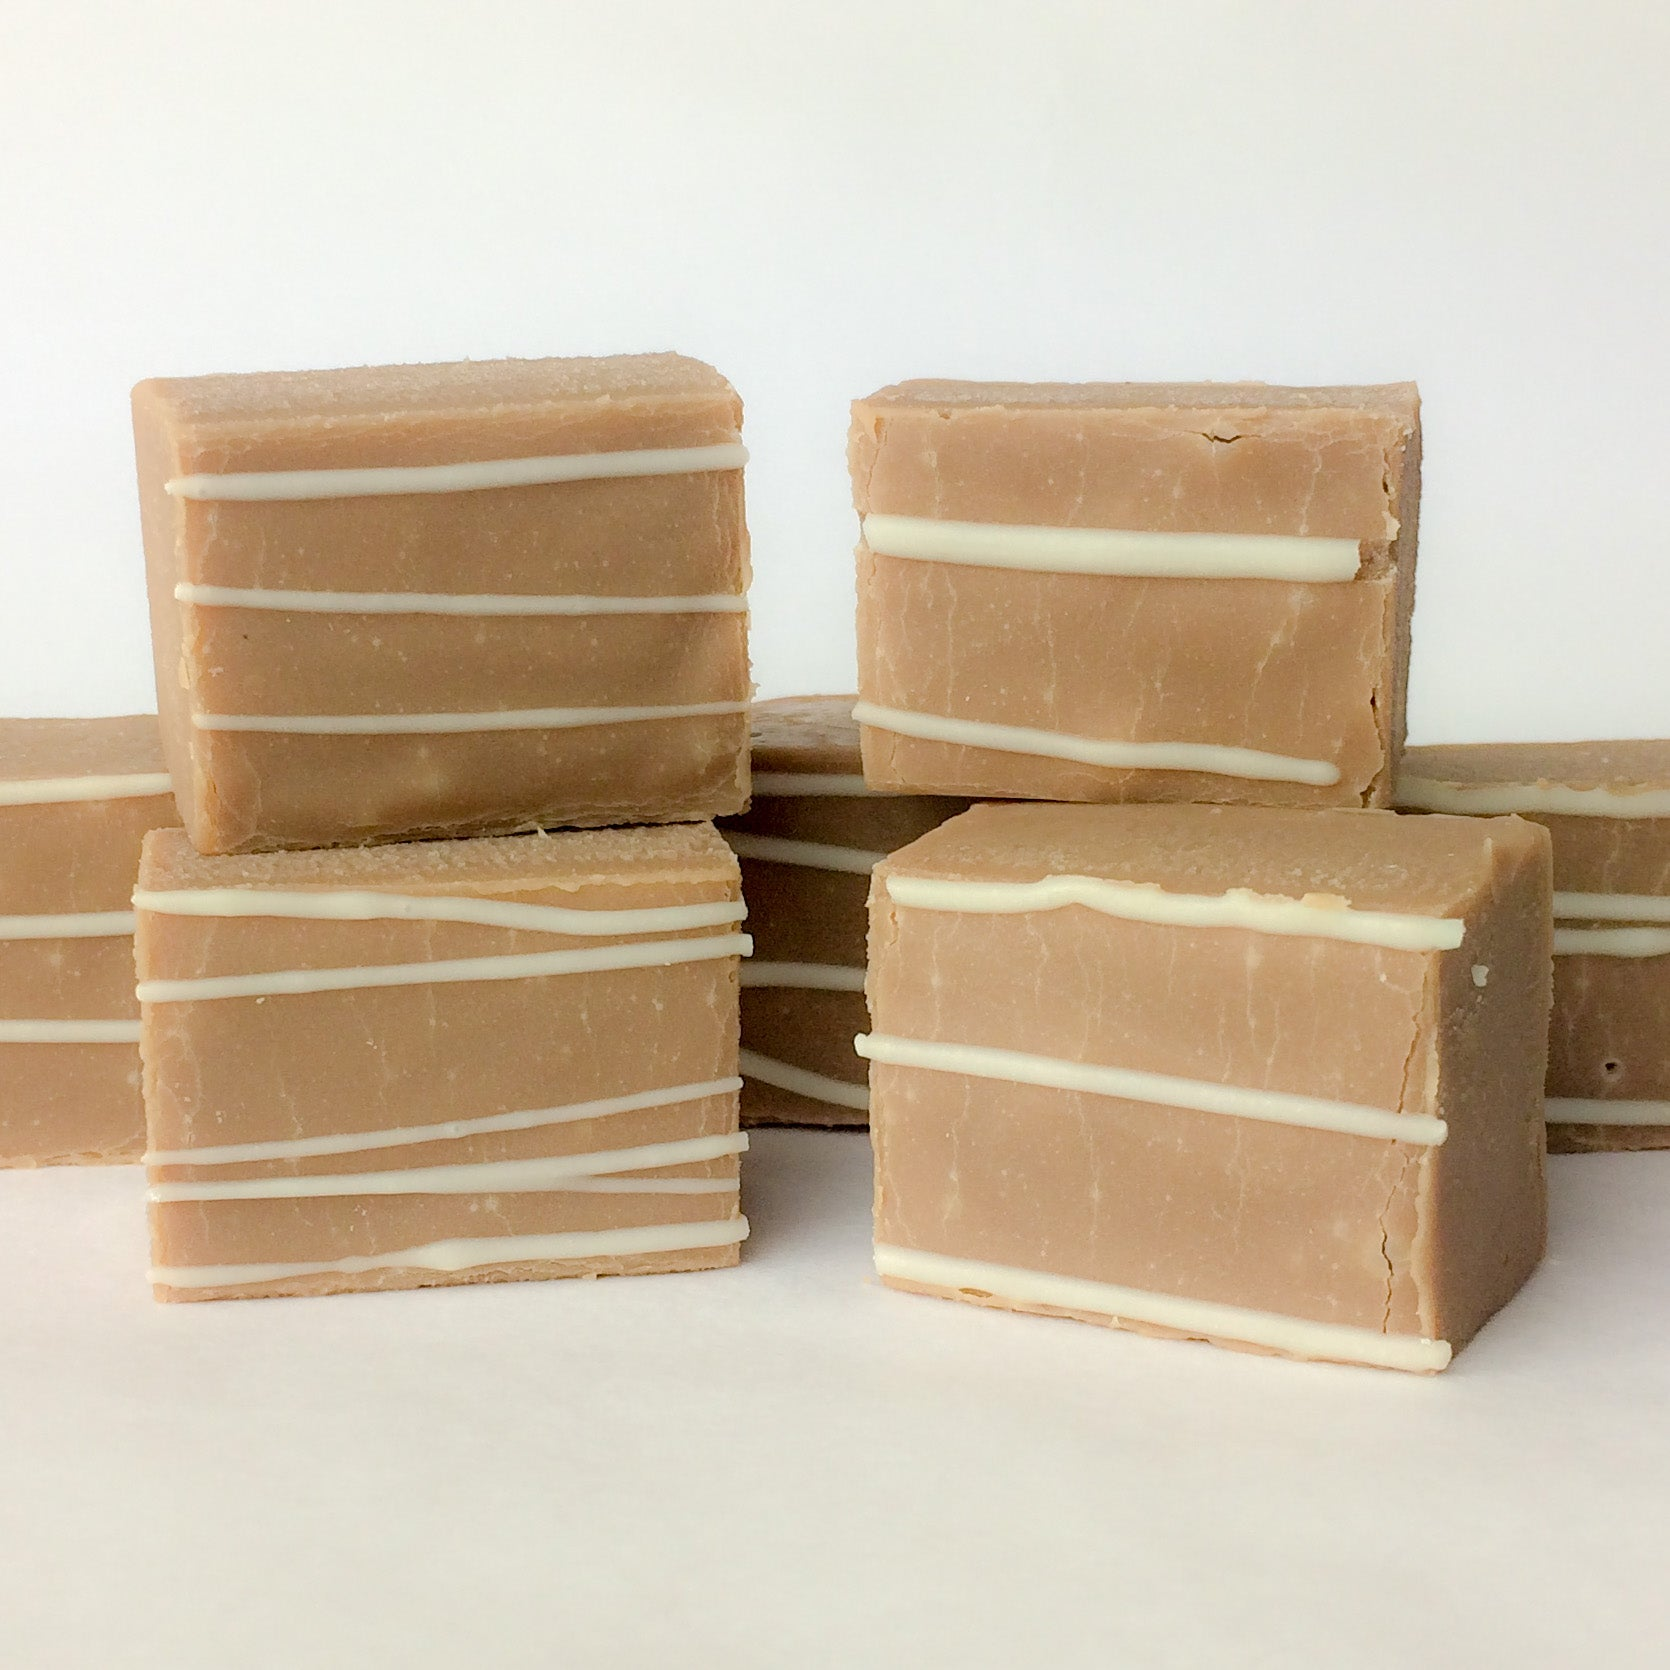 Irish Cream Liquor Fudge